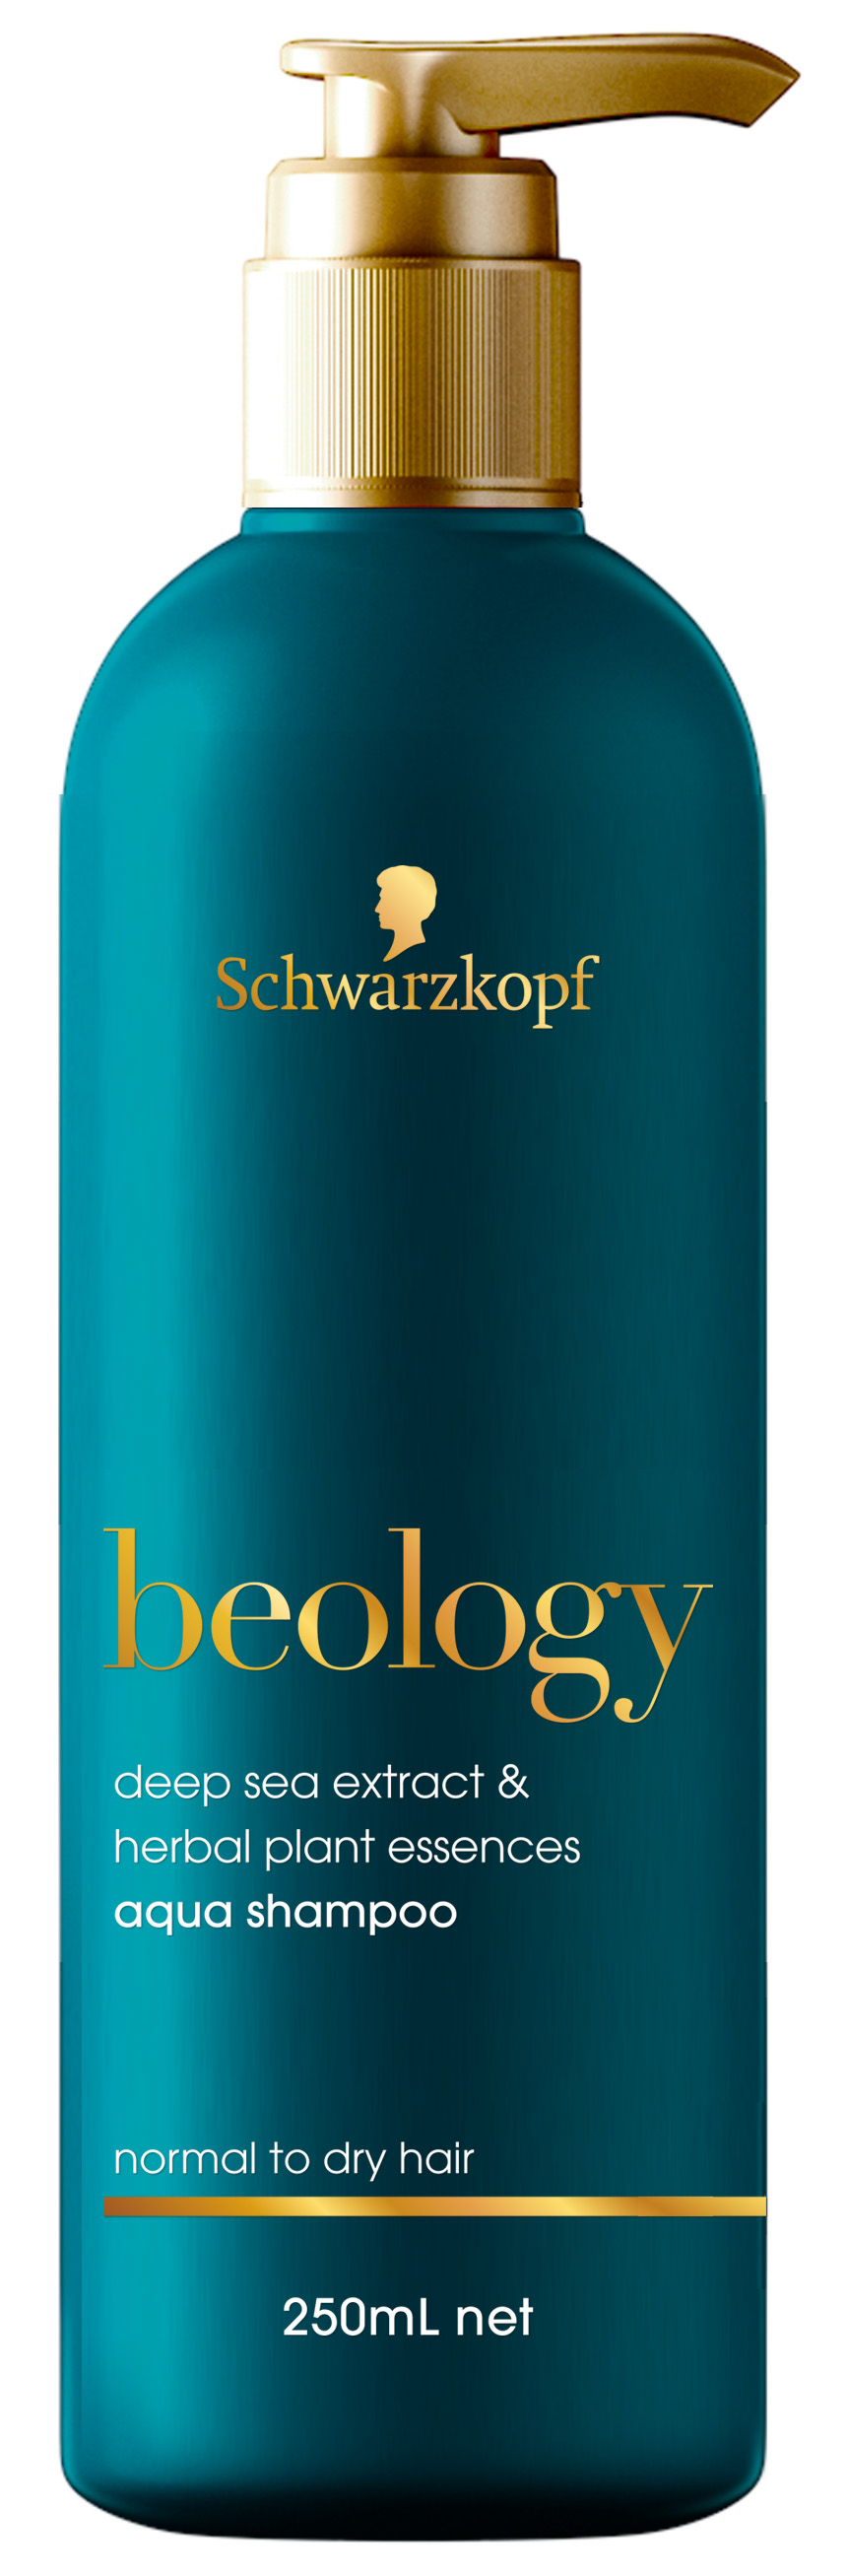 Beology_Aqua_Shampoo_250ml copy